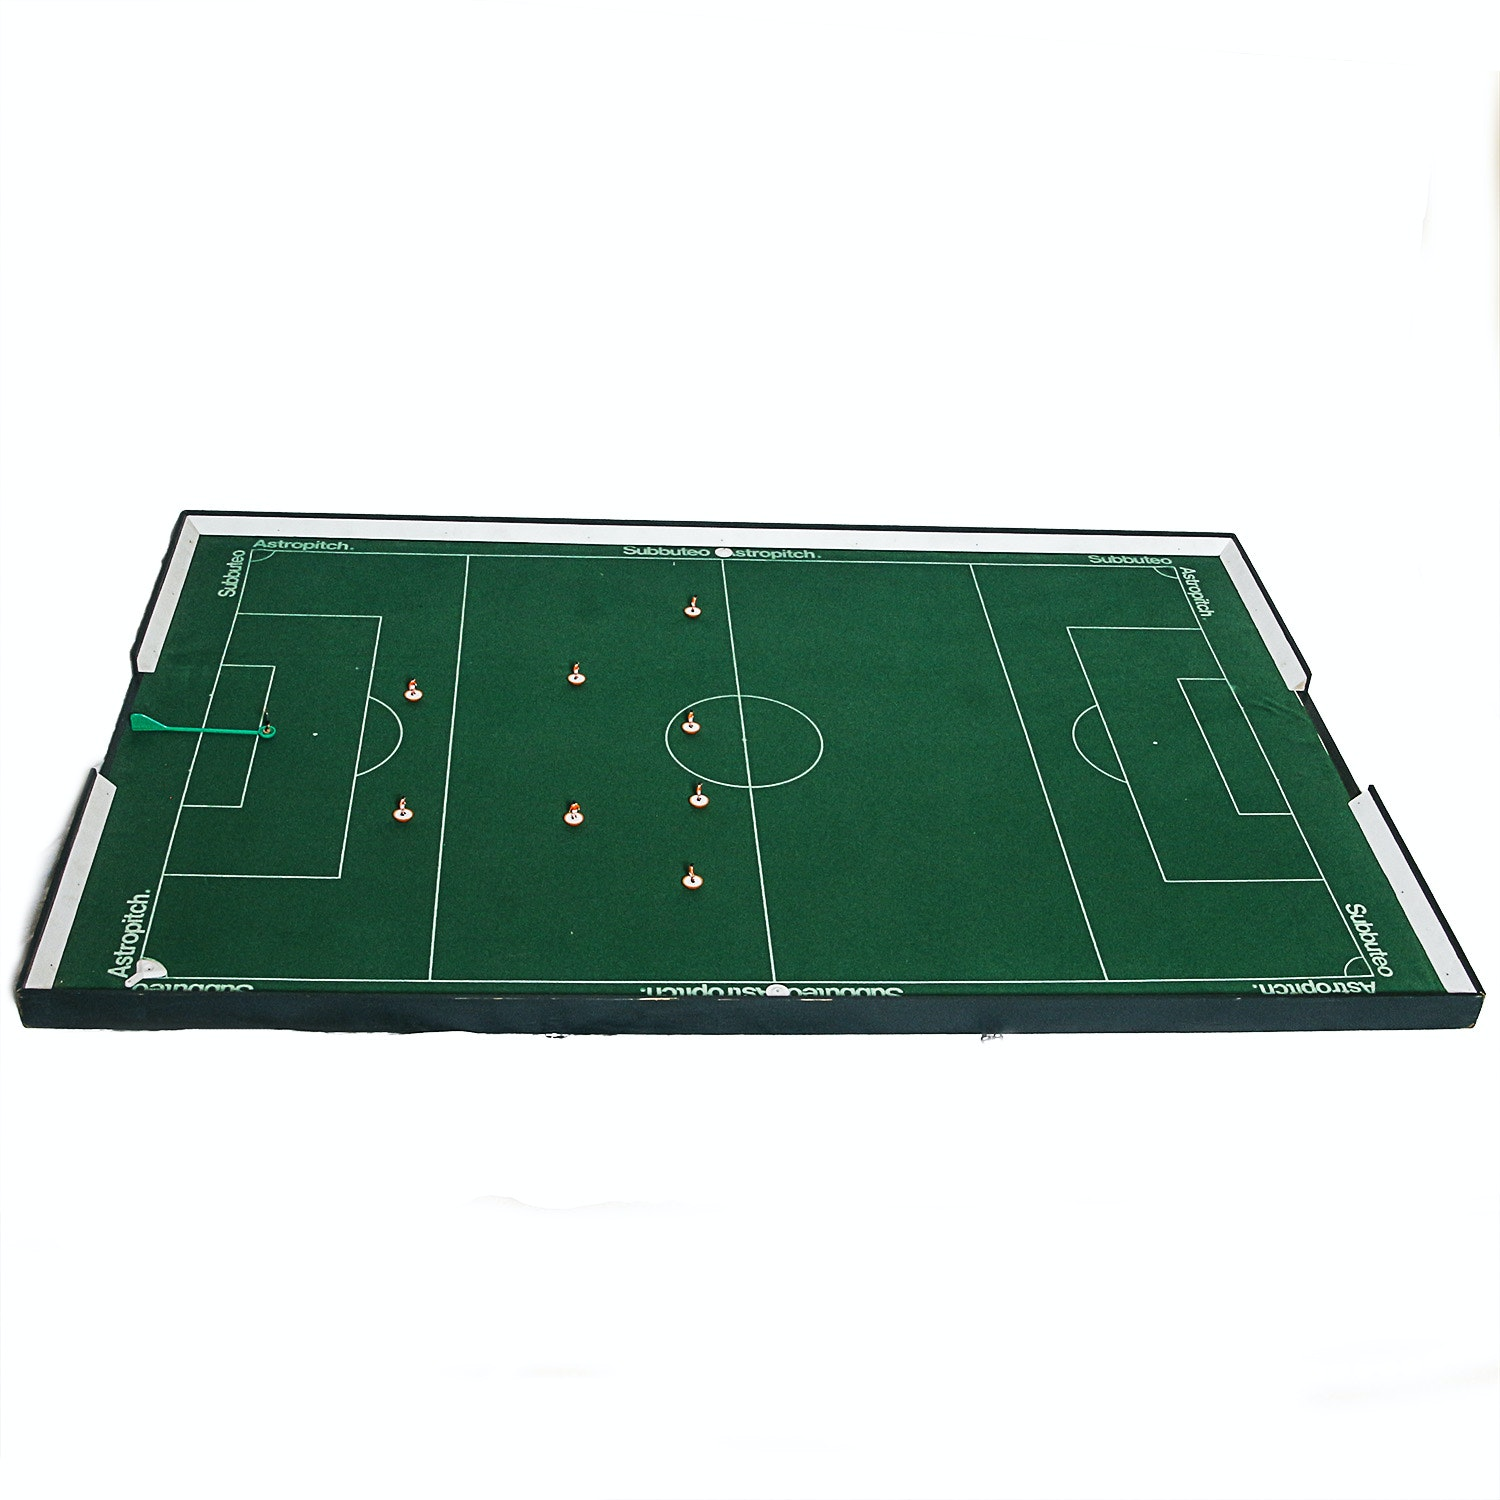 Subbuteo Astropitch Soccer Game Board with Player Pieces